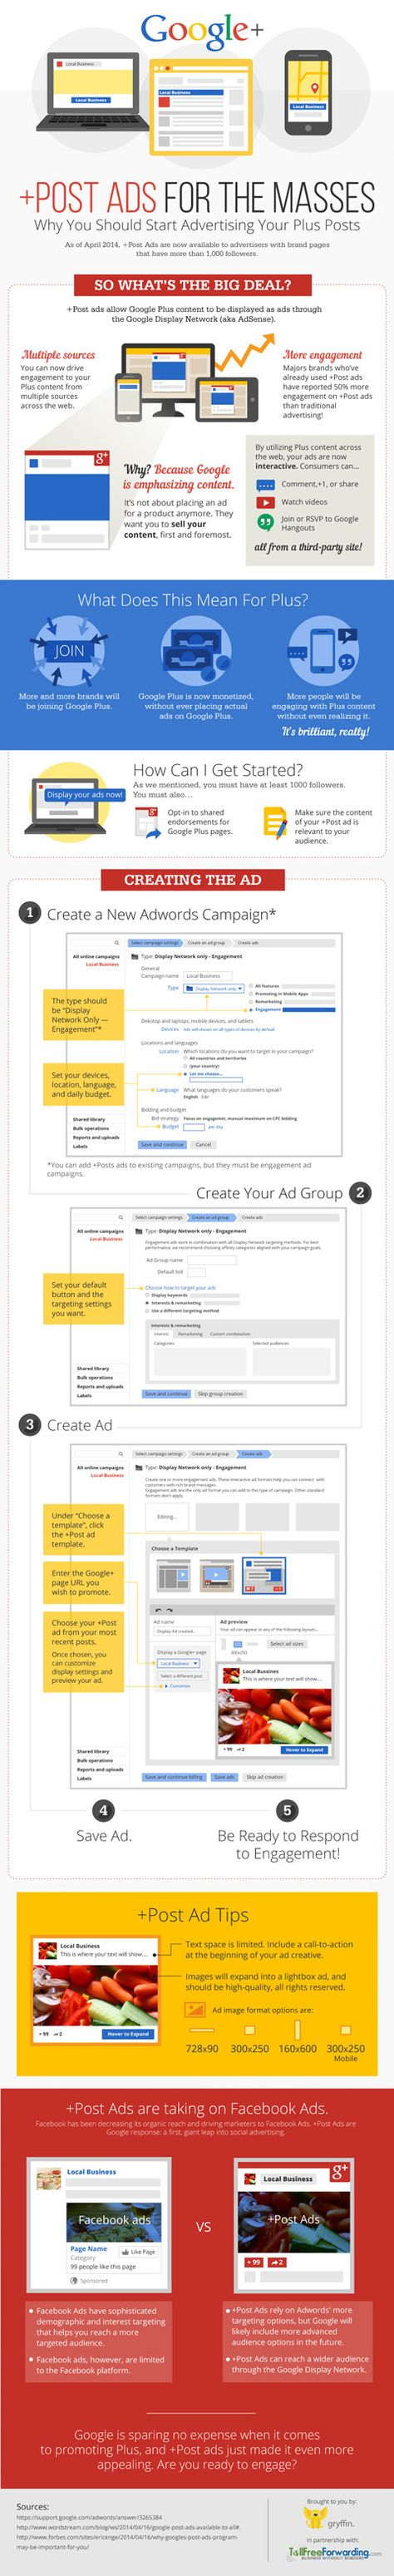 How to Use +Post Ads from Google: What Marketers Need to Know : Social Media Examiner